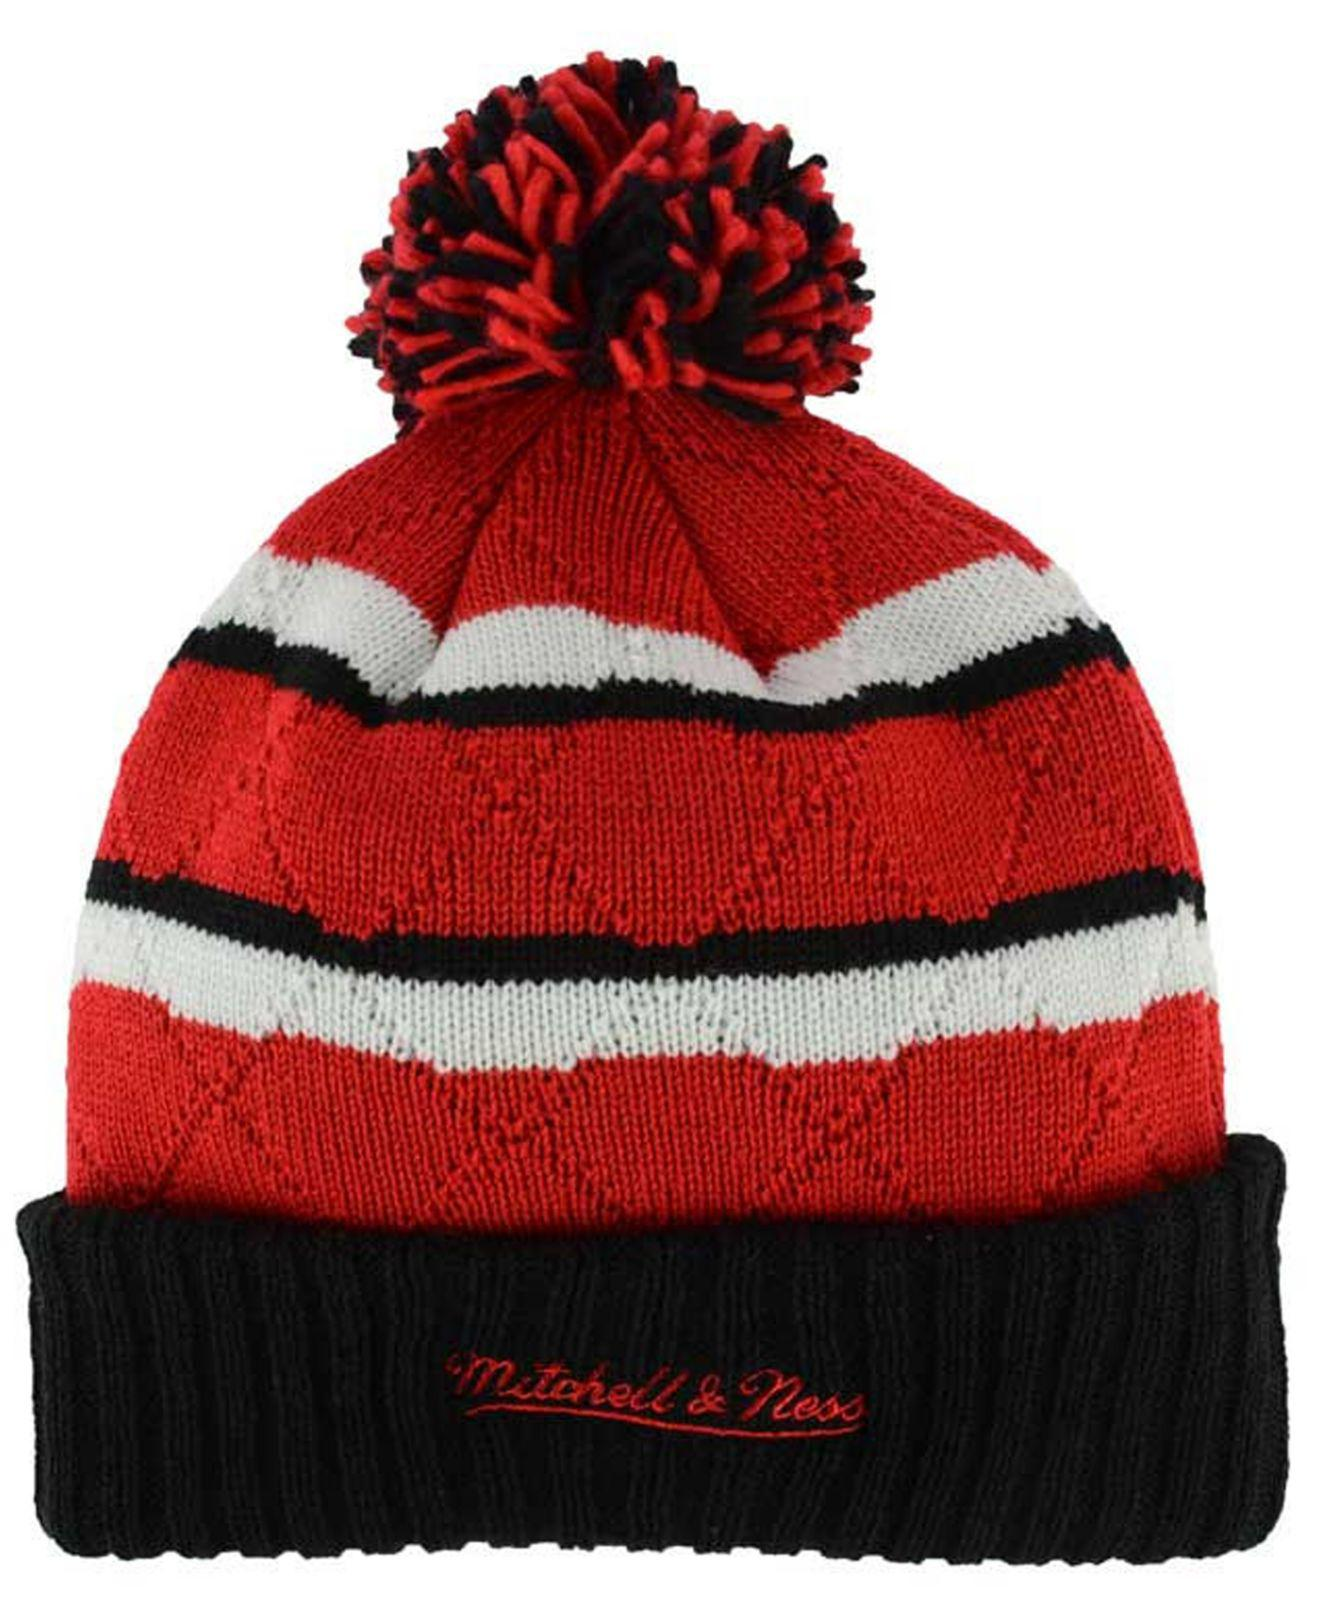 944f52c6ea057 ... ireland lyst mitchell ness quilted hi five knit hat in red for men  86169 a1fef